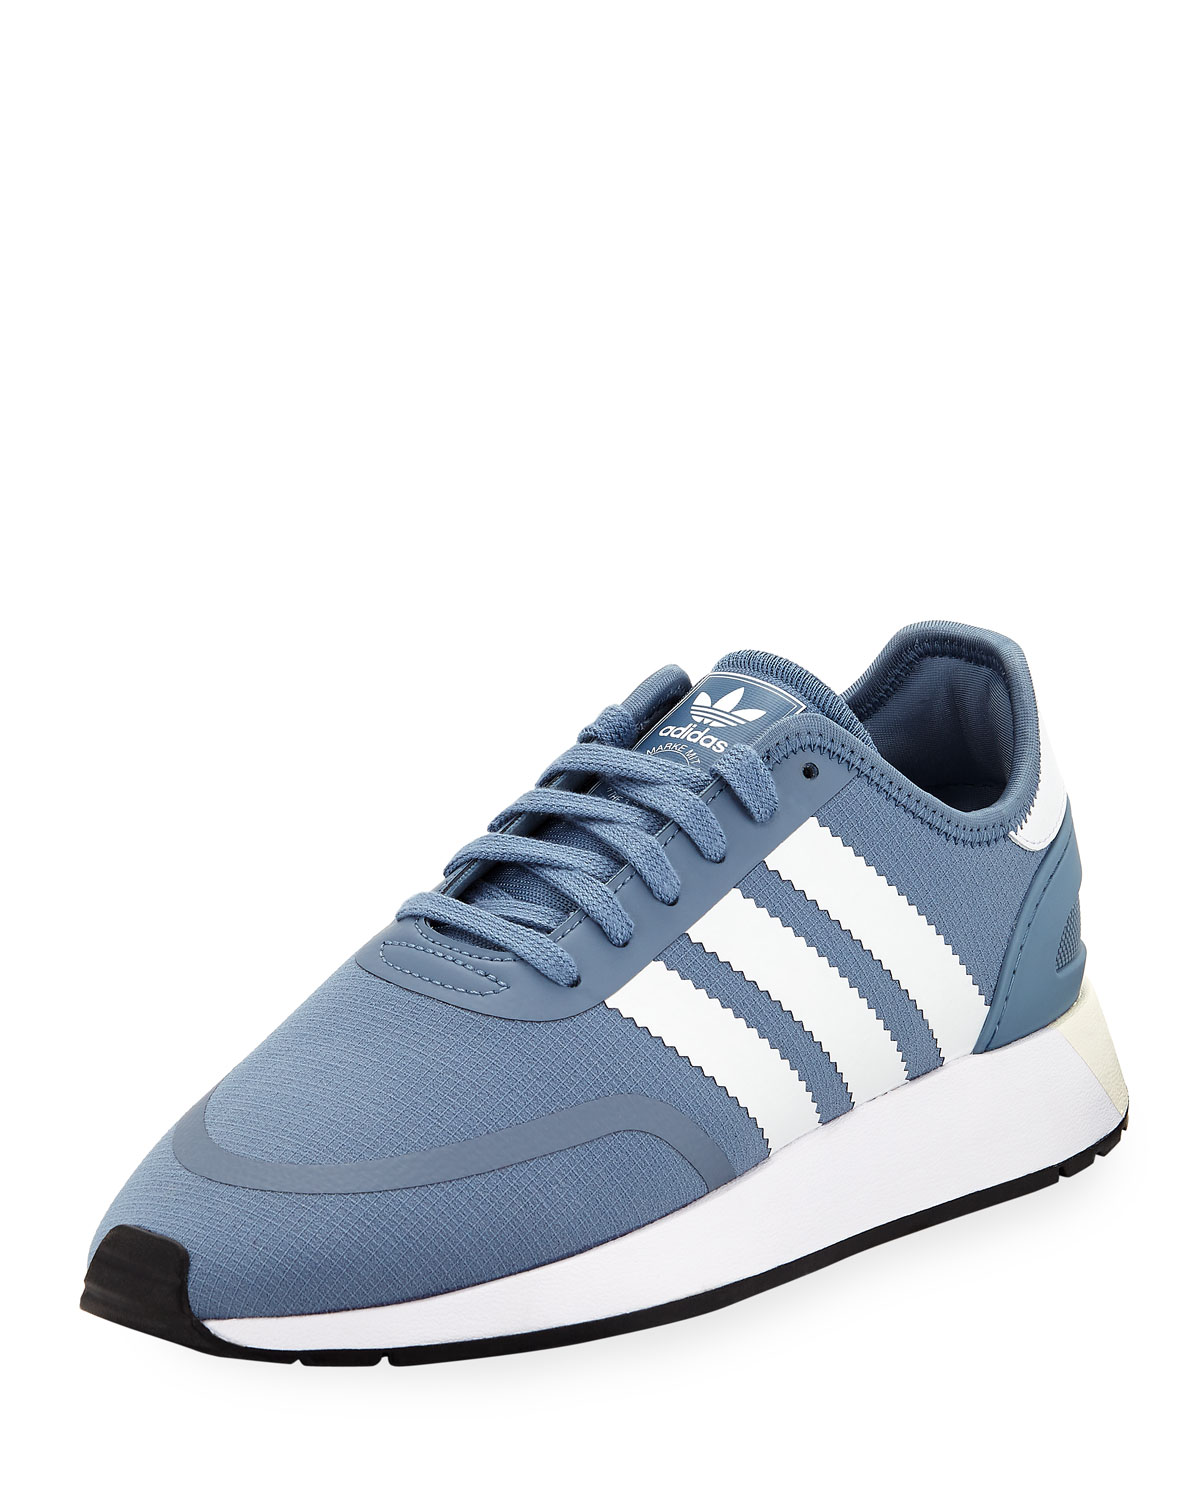 Adidas Fabric N-5923 Fabric Adidas Sneakers with Leather 3-Stripes dadf2e